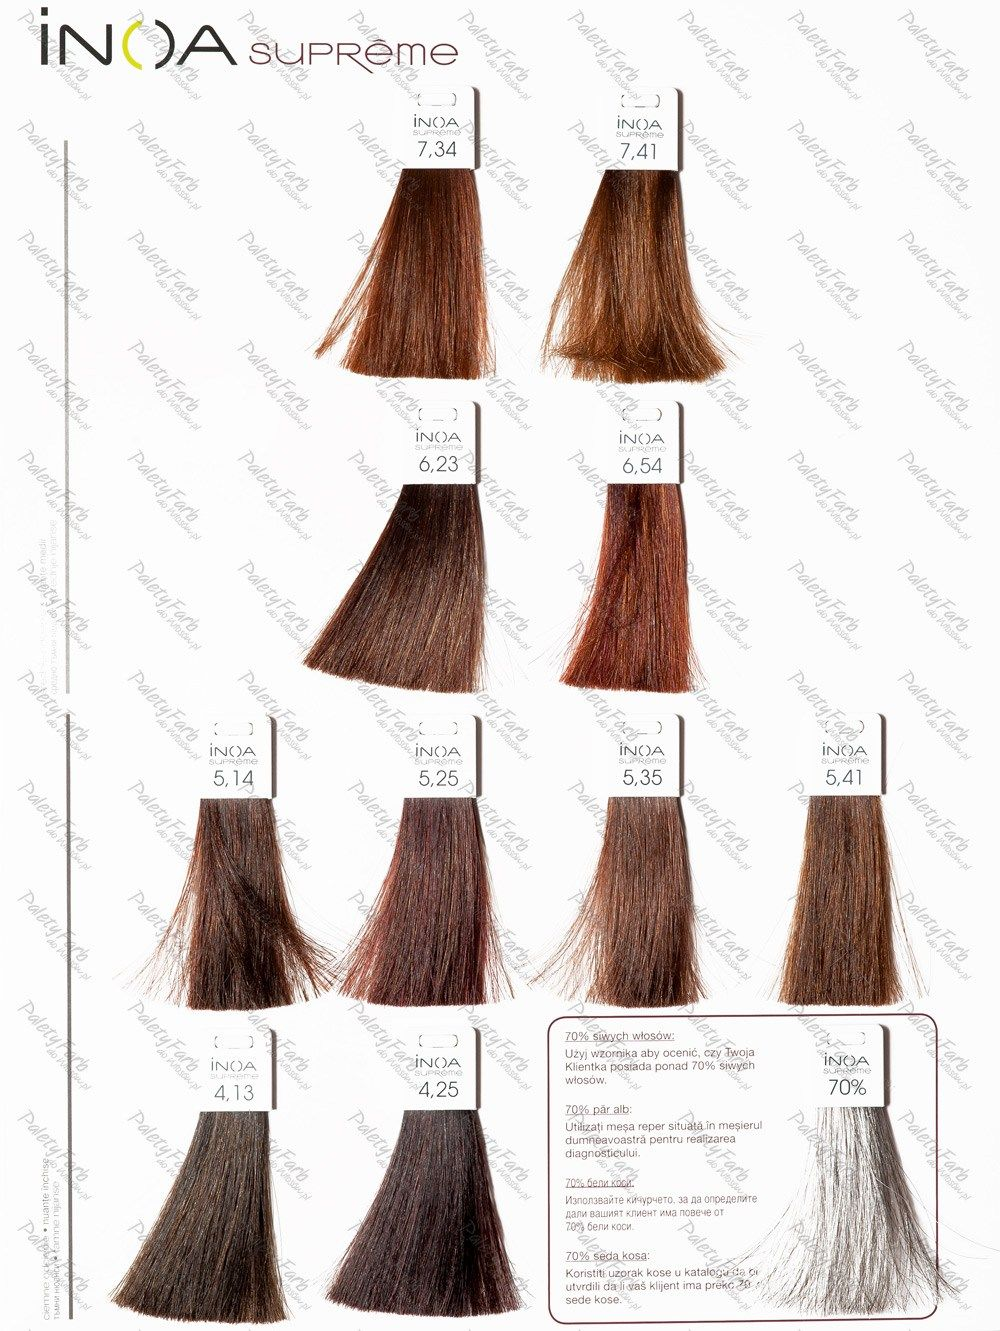 Reasonable Loreal Inoa Supreme Color Chart Goldwell Hair Color Swatches Copper Hair Colour Chart In 2020 Copper Hair Color Matrix Hair Color Chart Hair Color Swatches